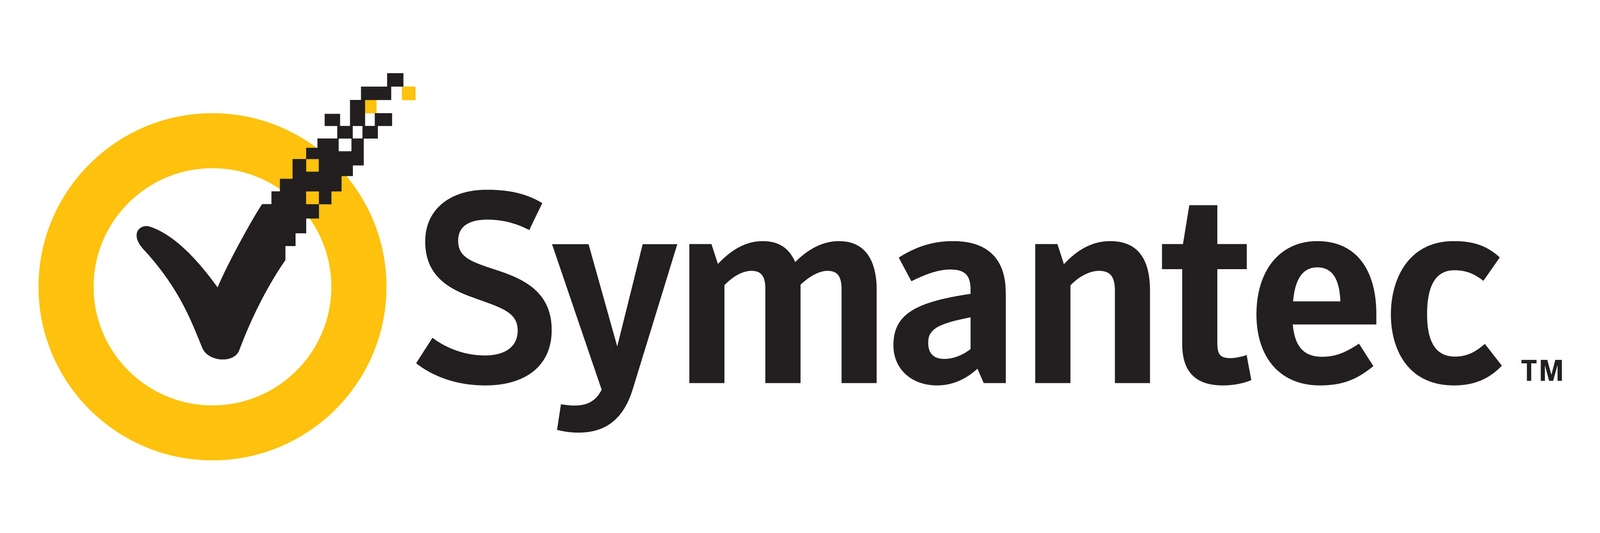 Symantec Is About To Make Online Shopping In Malaysia Safer Nasi